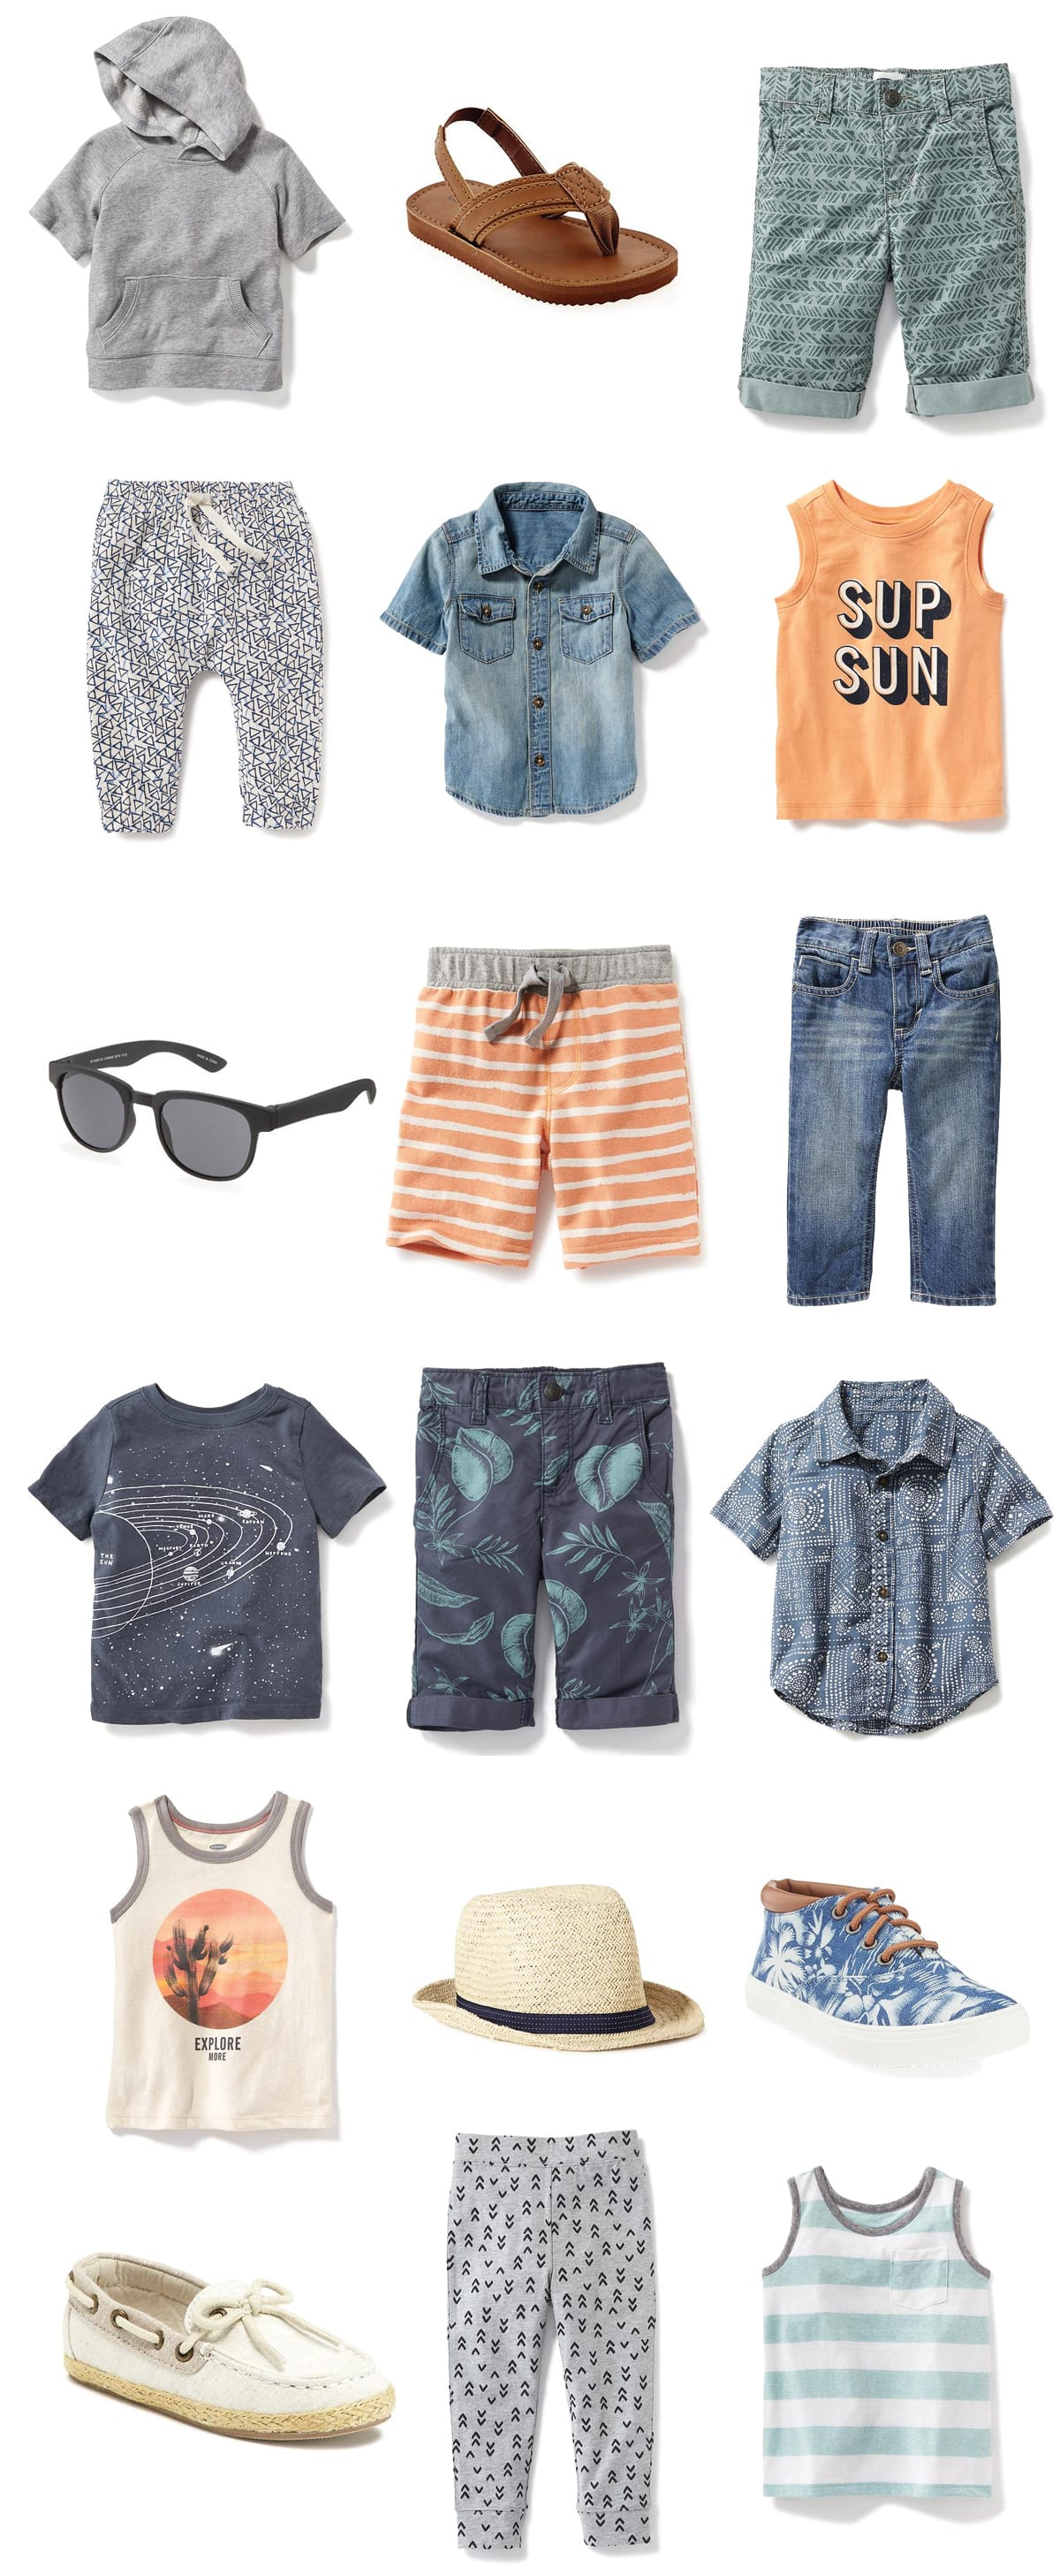 online store 602ea 0ba09 Cool (And Affordable!) Warm-Weather Clothes for Toddler Boys ...